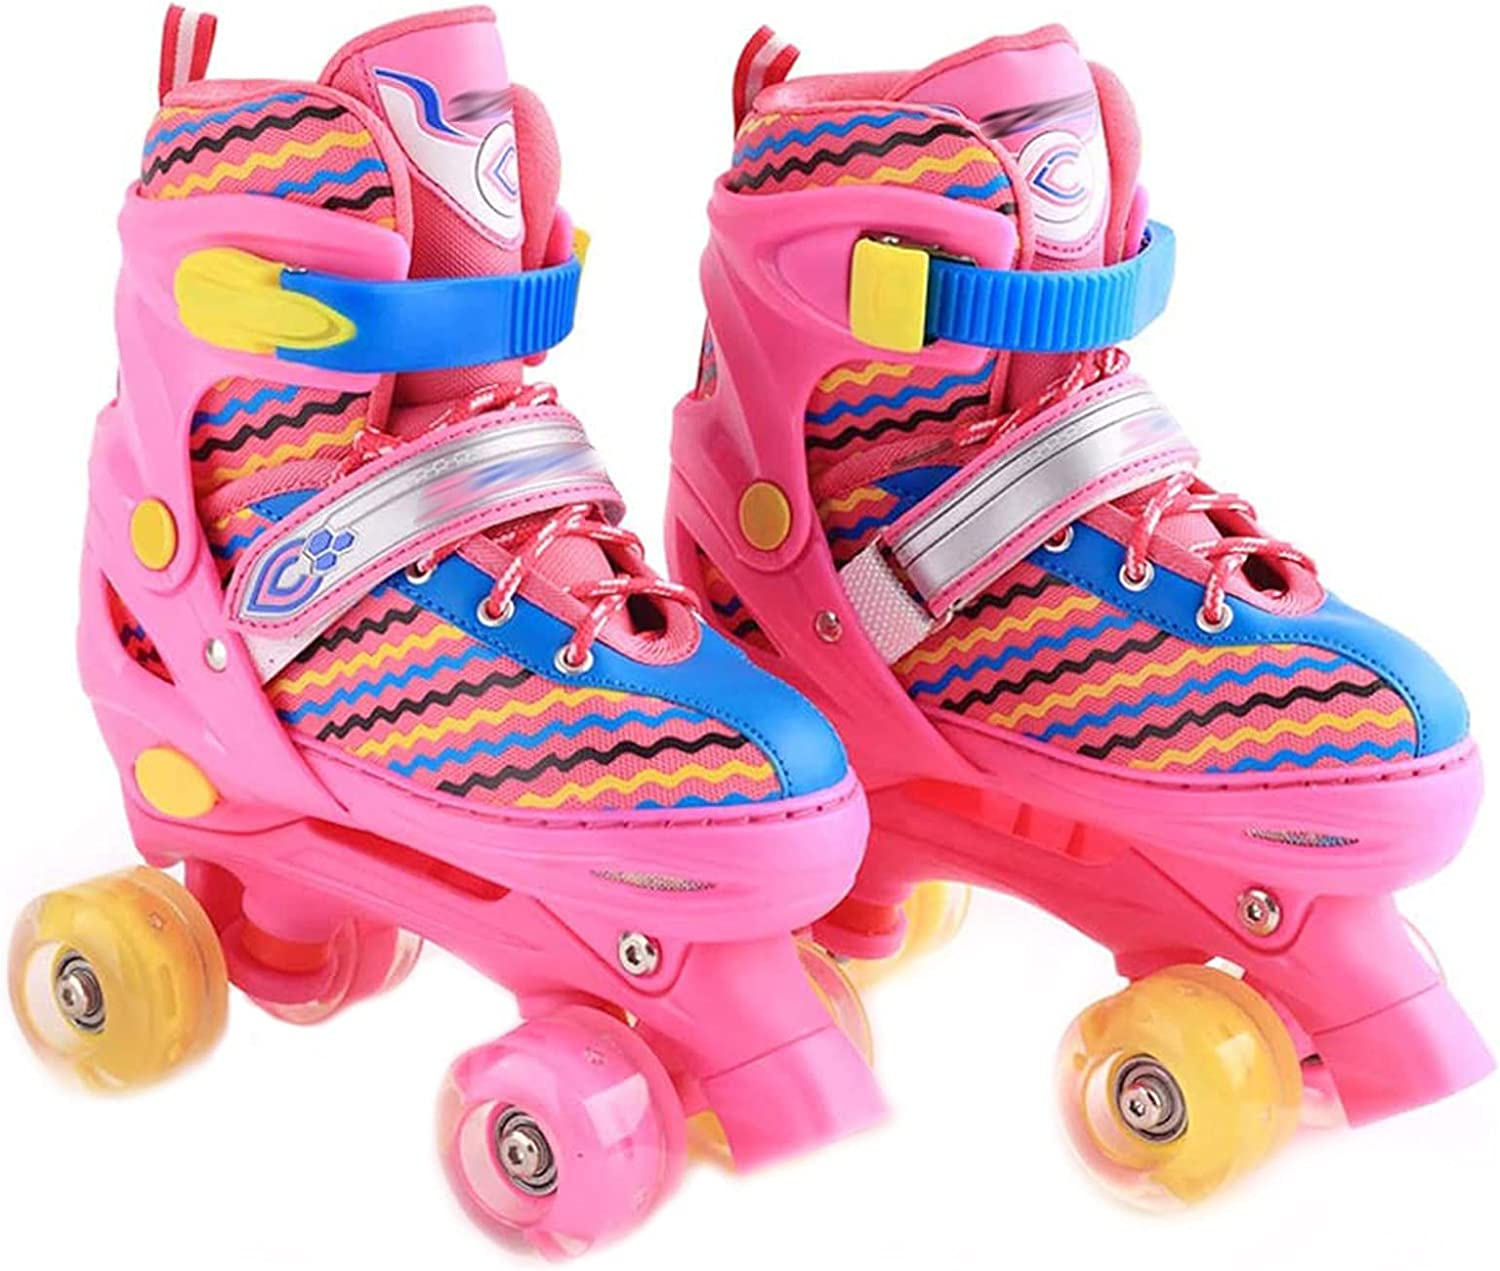 Adjustable Roller Skates New popularity for Girls and Boys Flashing Skate w Mesa Mall Fun